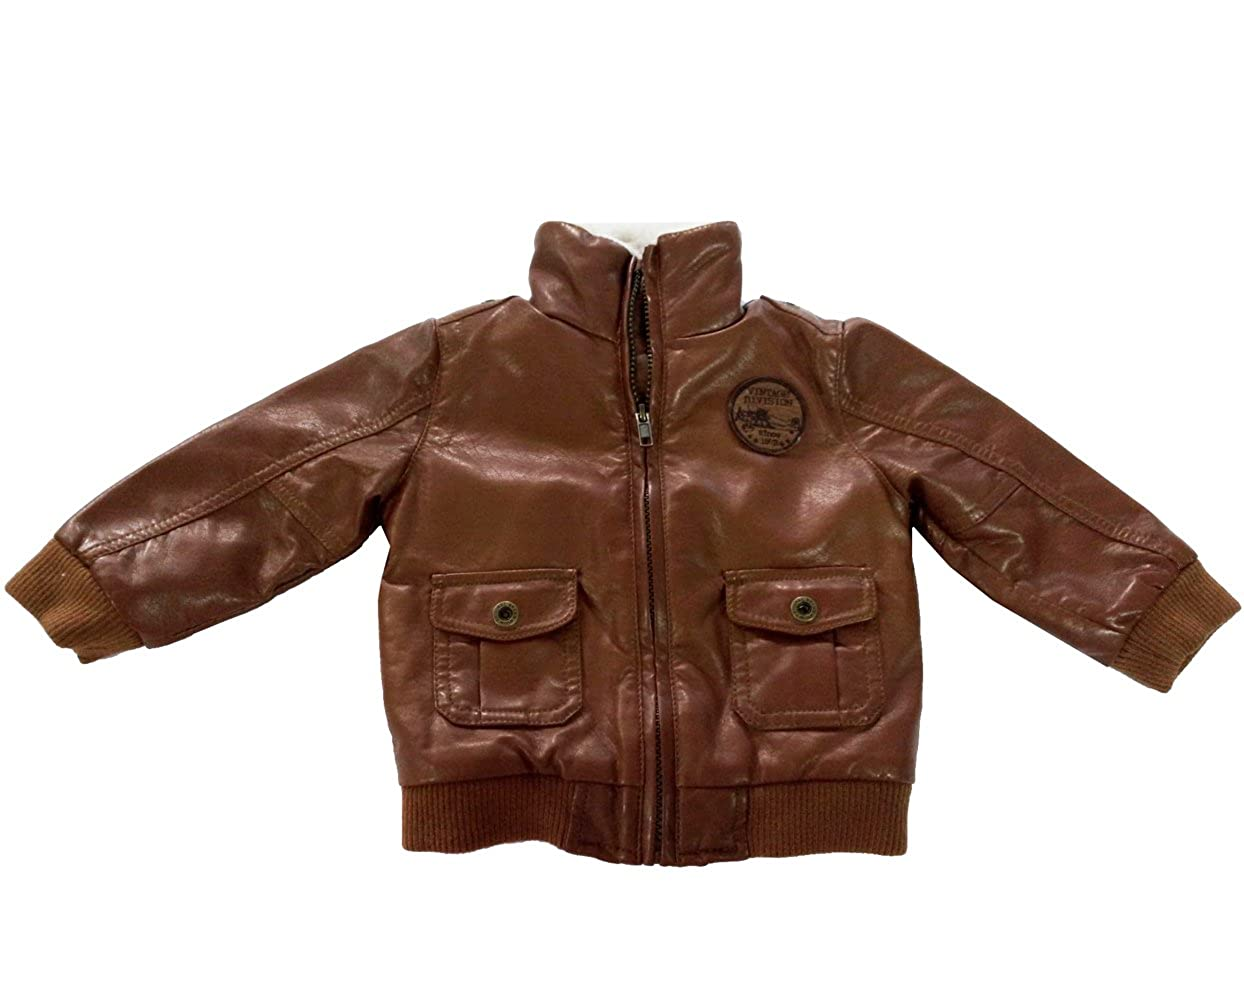 Infant Baby Boys PU Leather Berber Fleece Jacket Coats Outerwear